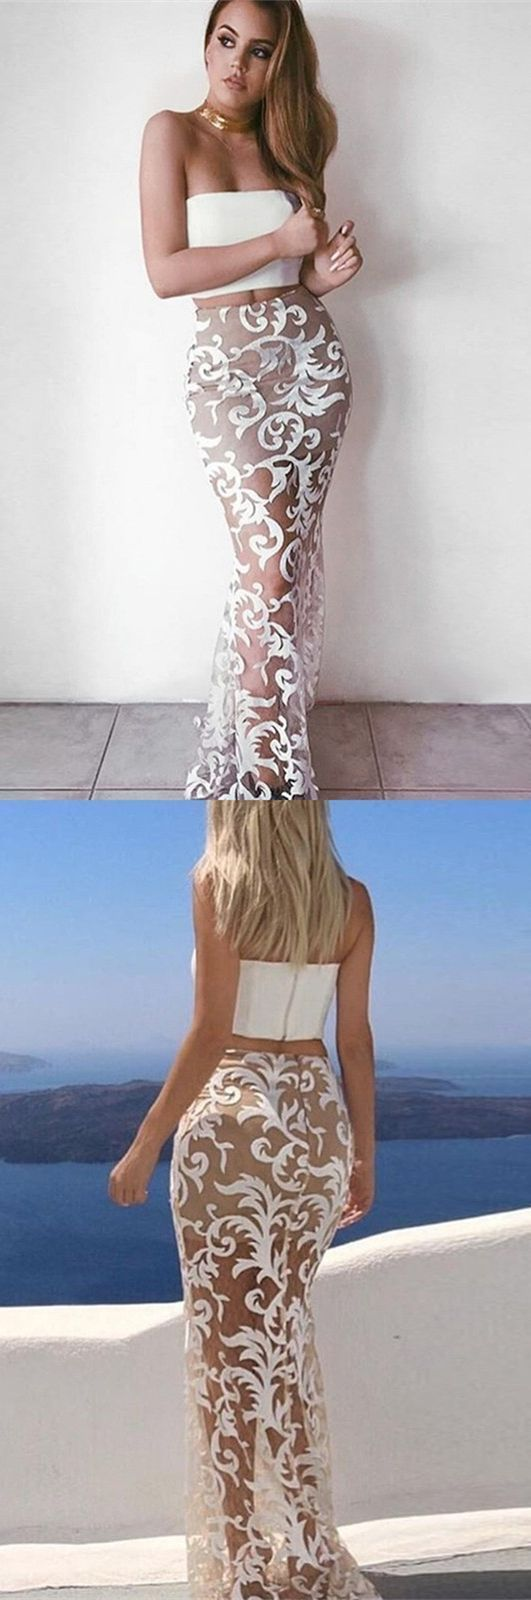 Modest two piece white mermaid prom dresses simple strapless sheer